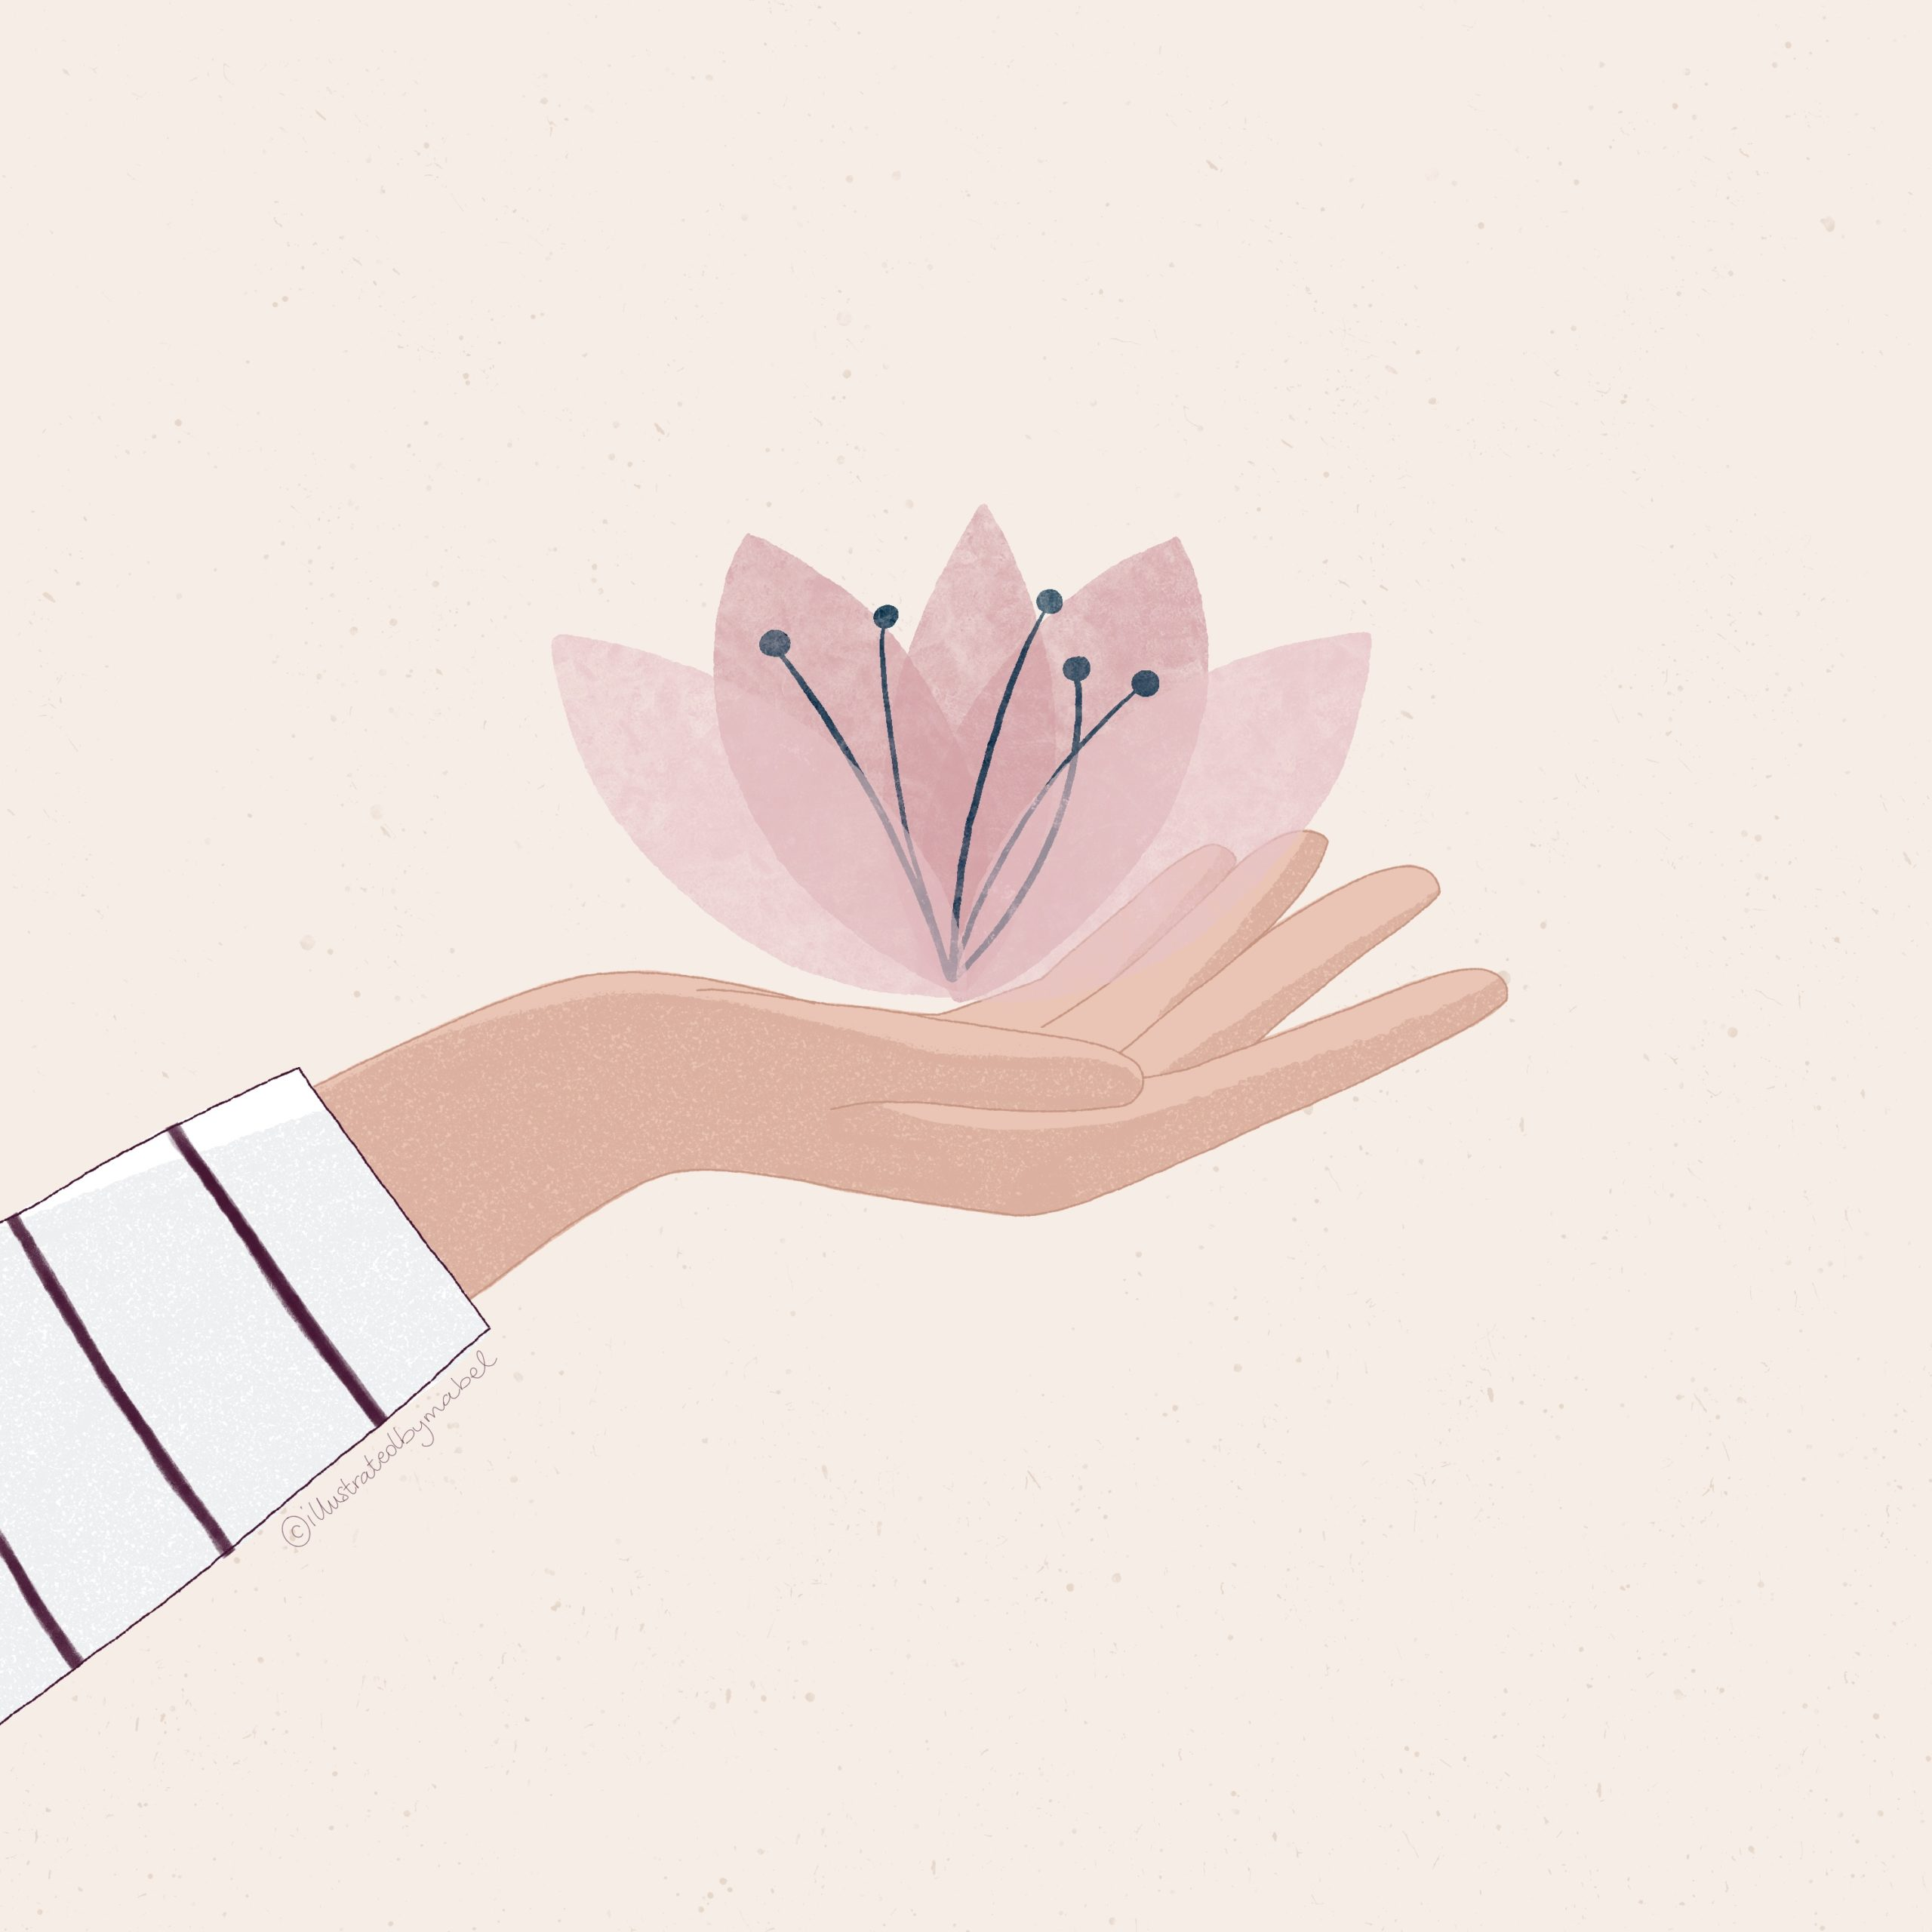 custom illustration services. Hand holding a blossoming flower